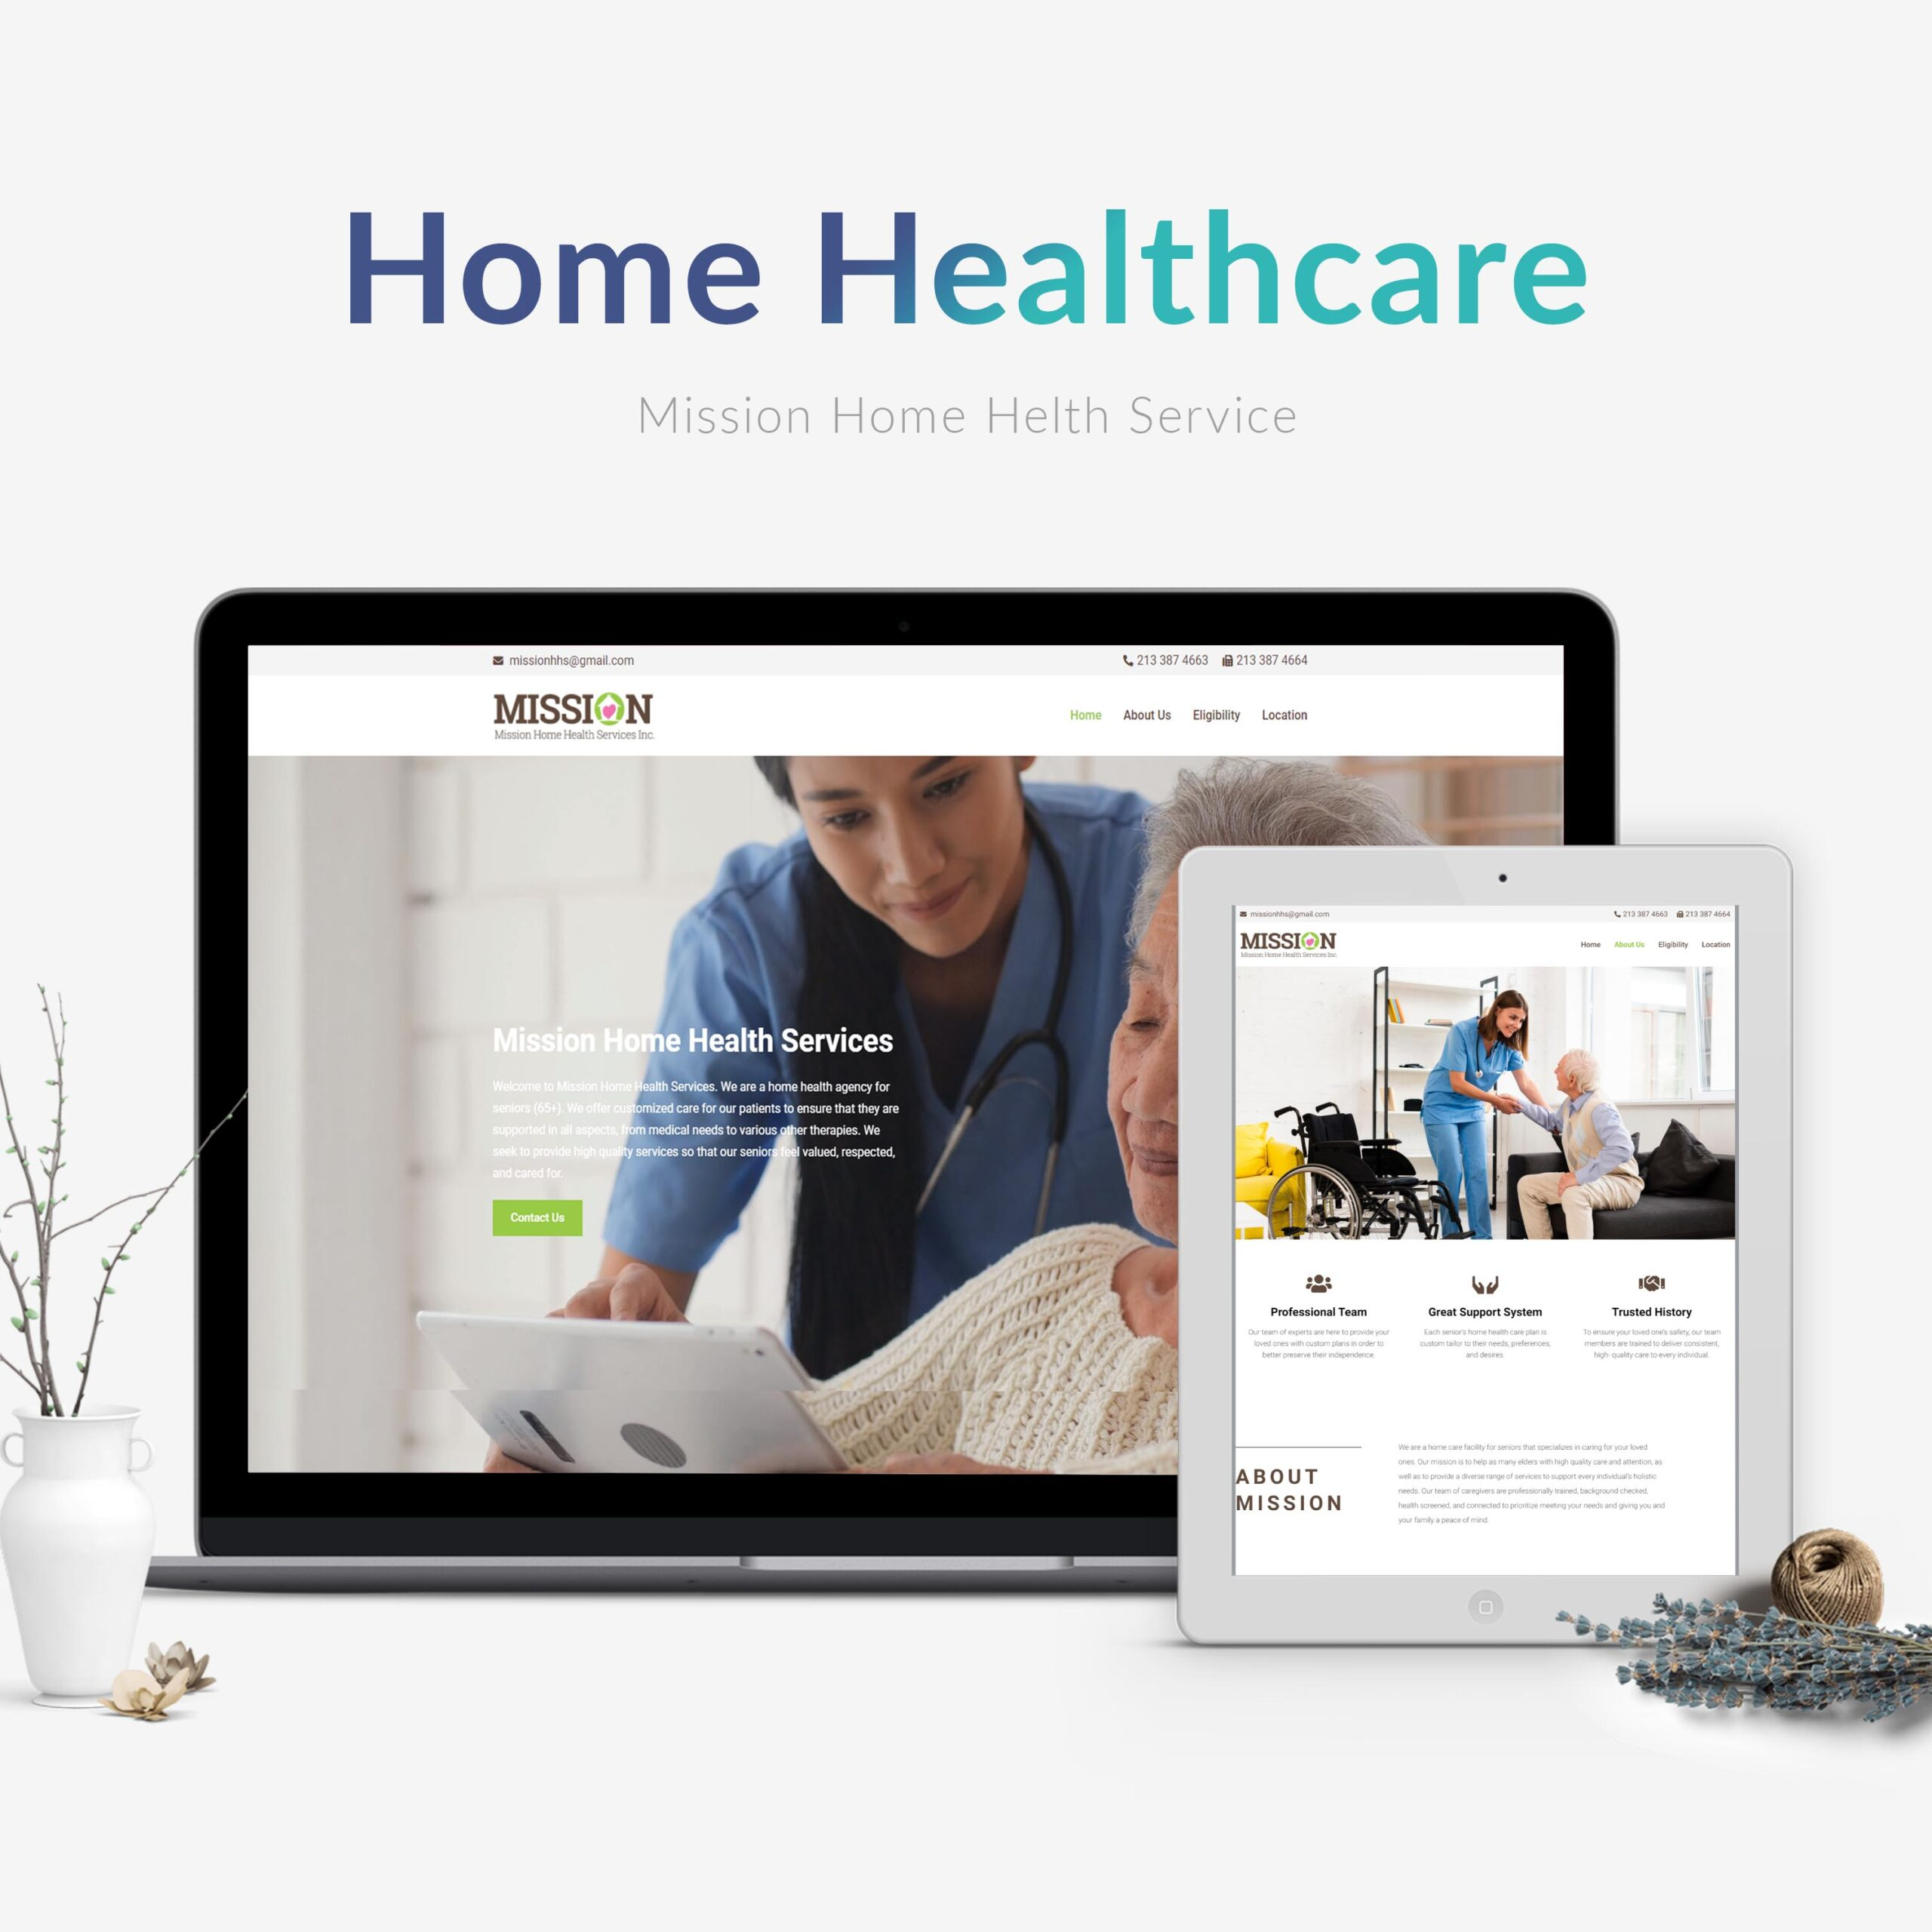 mission-home-care-wordpress-website-wadm-wearedigitalmarketer-위아디지털마케터